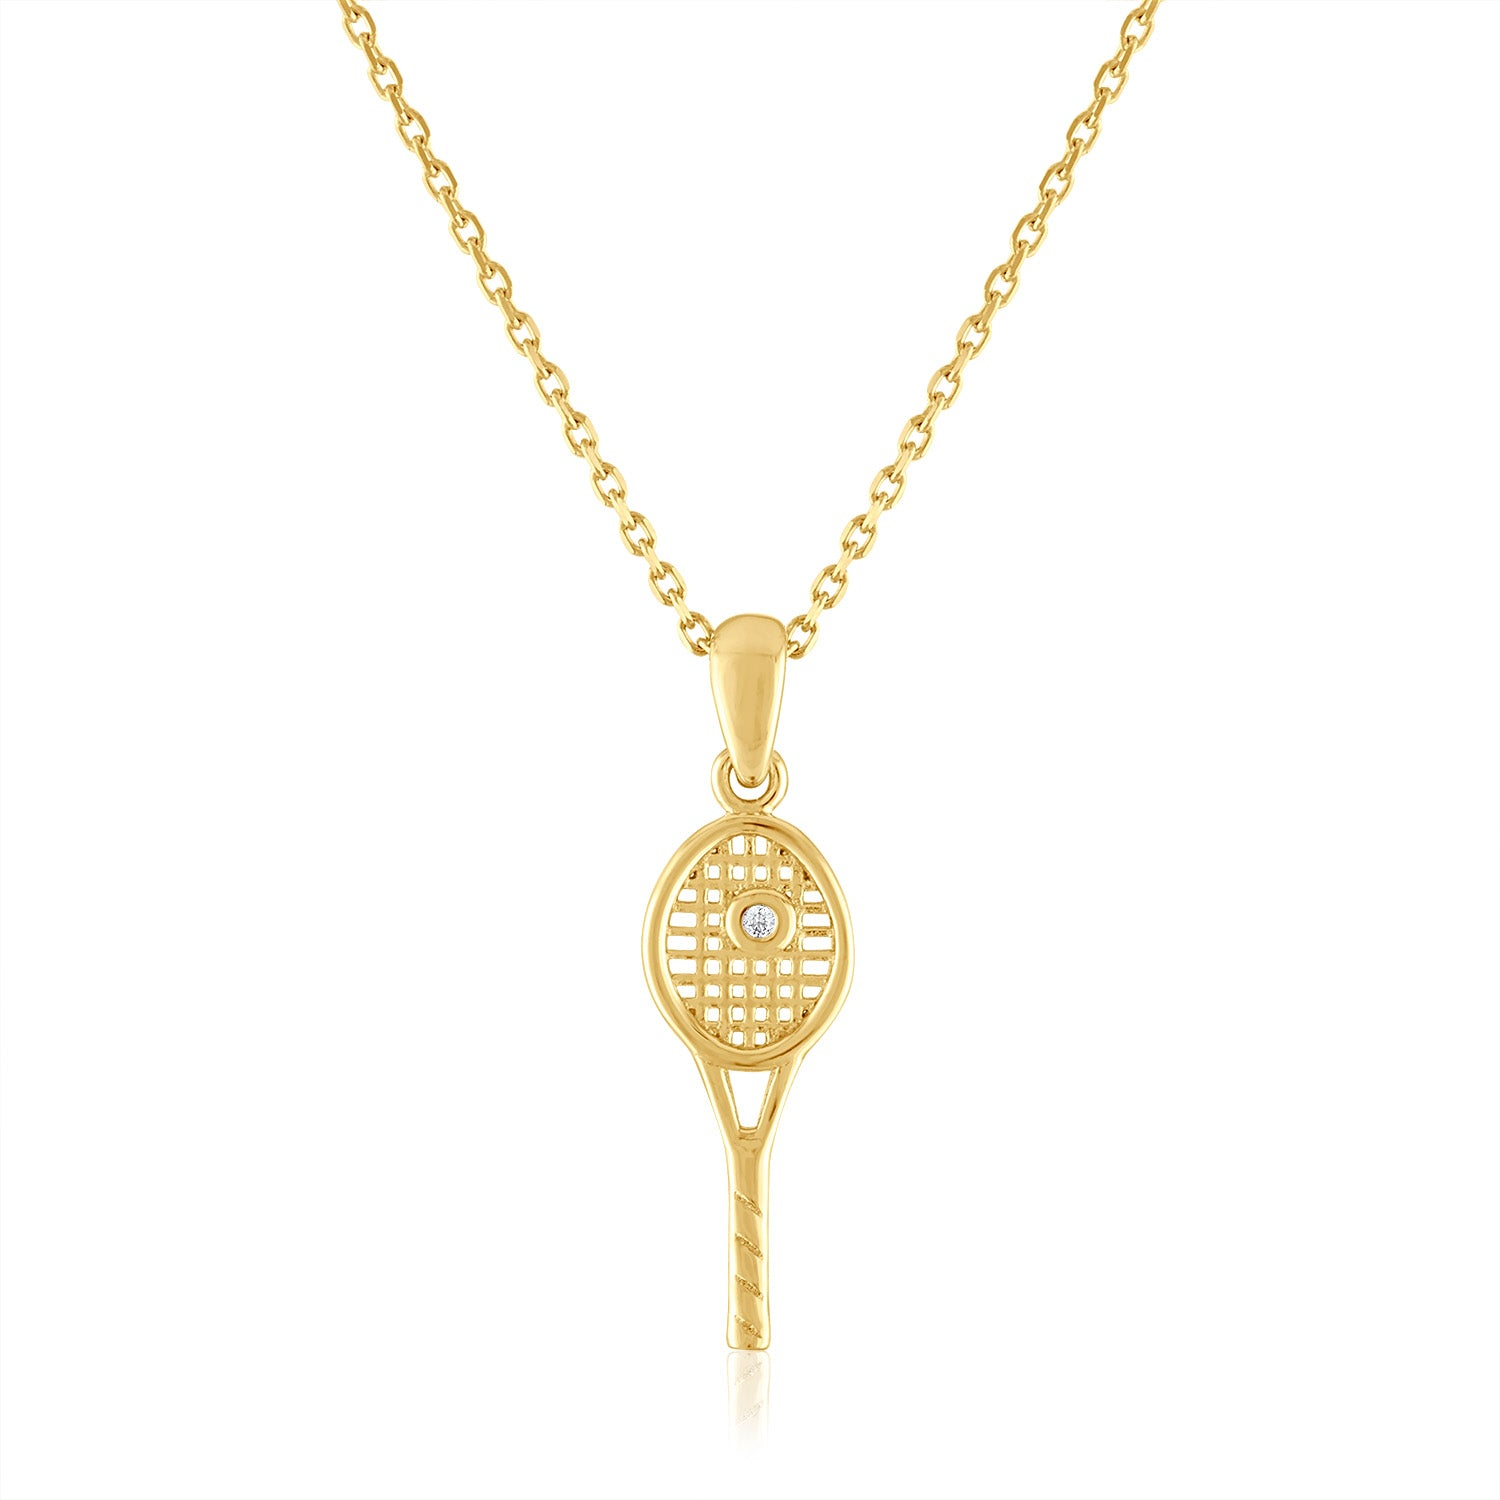 14Kt Gold and diamond Petite Racquet Pendant